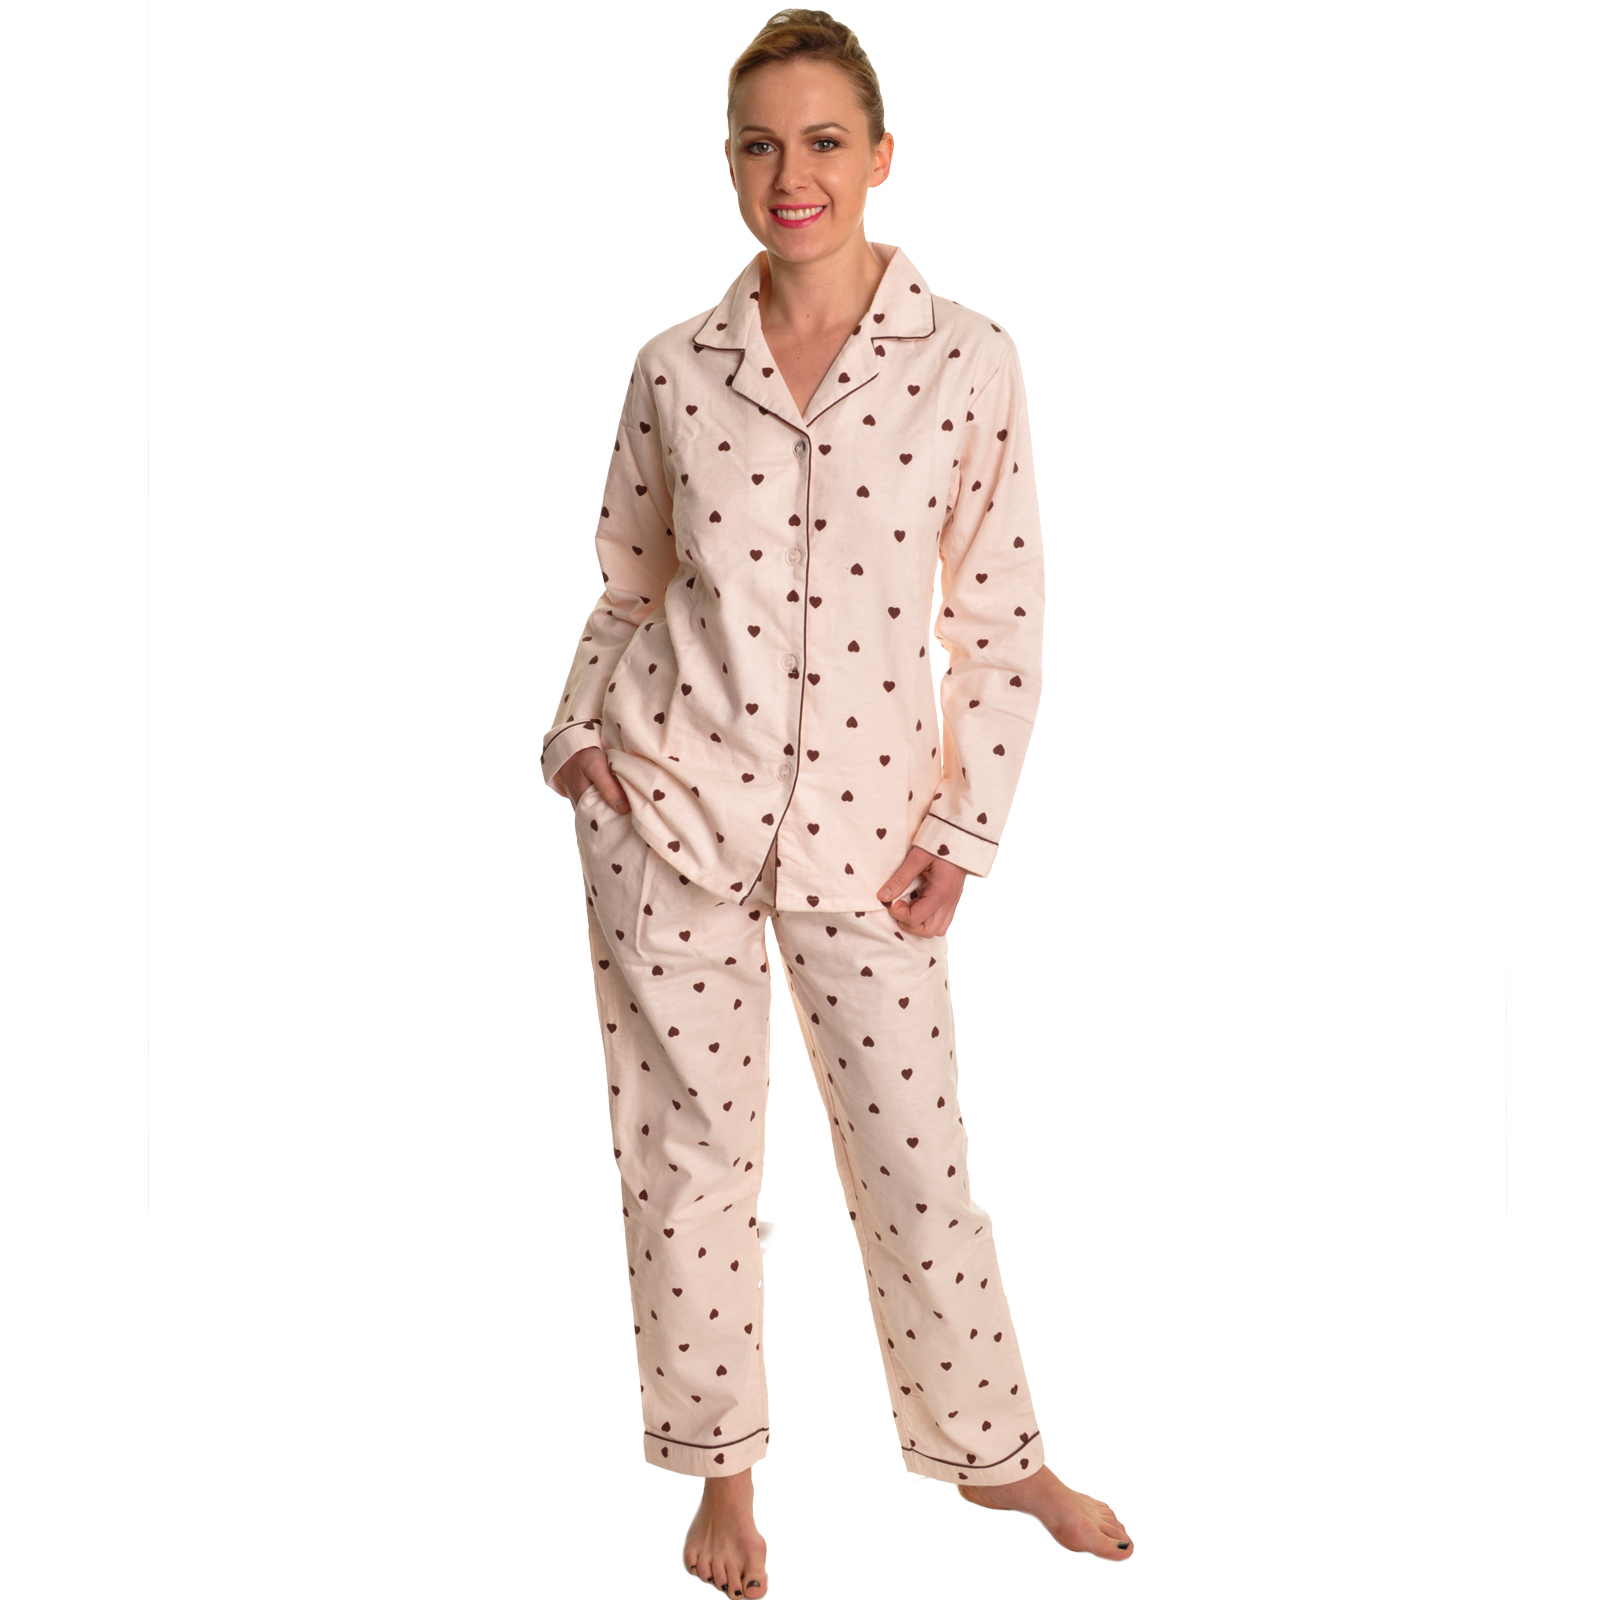 Shop for flannel pajamas womens online at Target. Free shipping on purchases over $35 and save 5% every day with your Target REDcard.